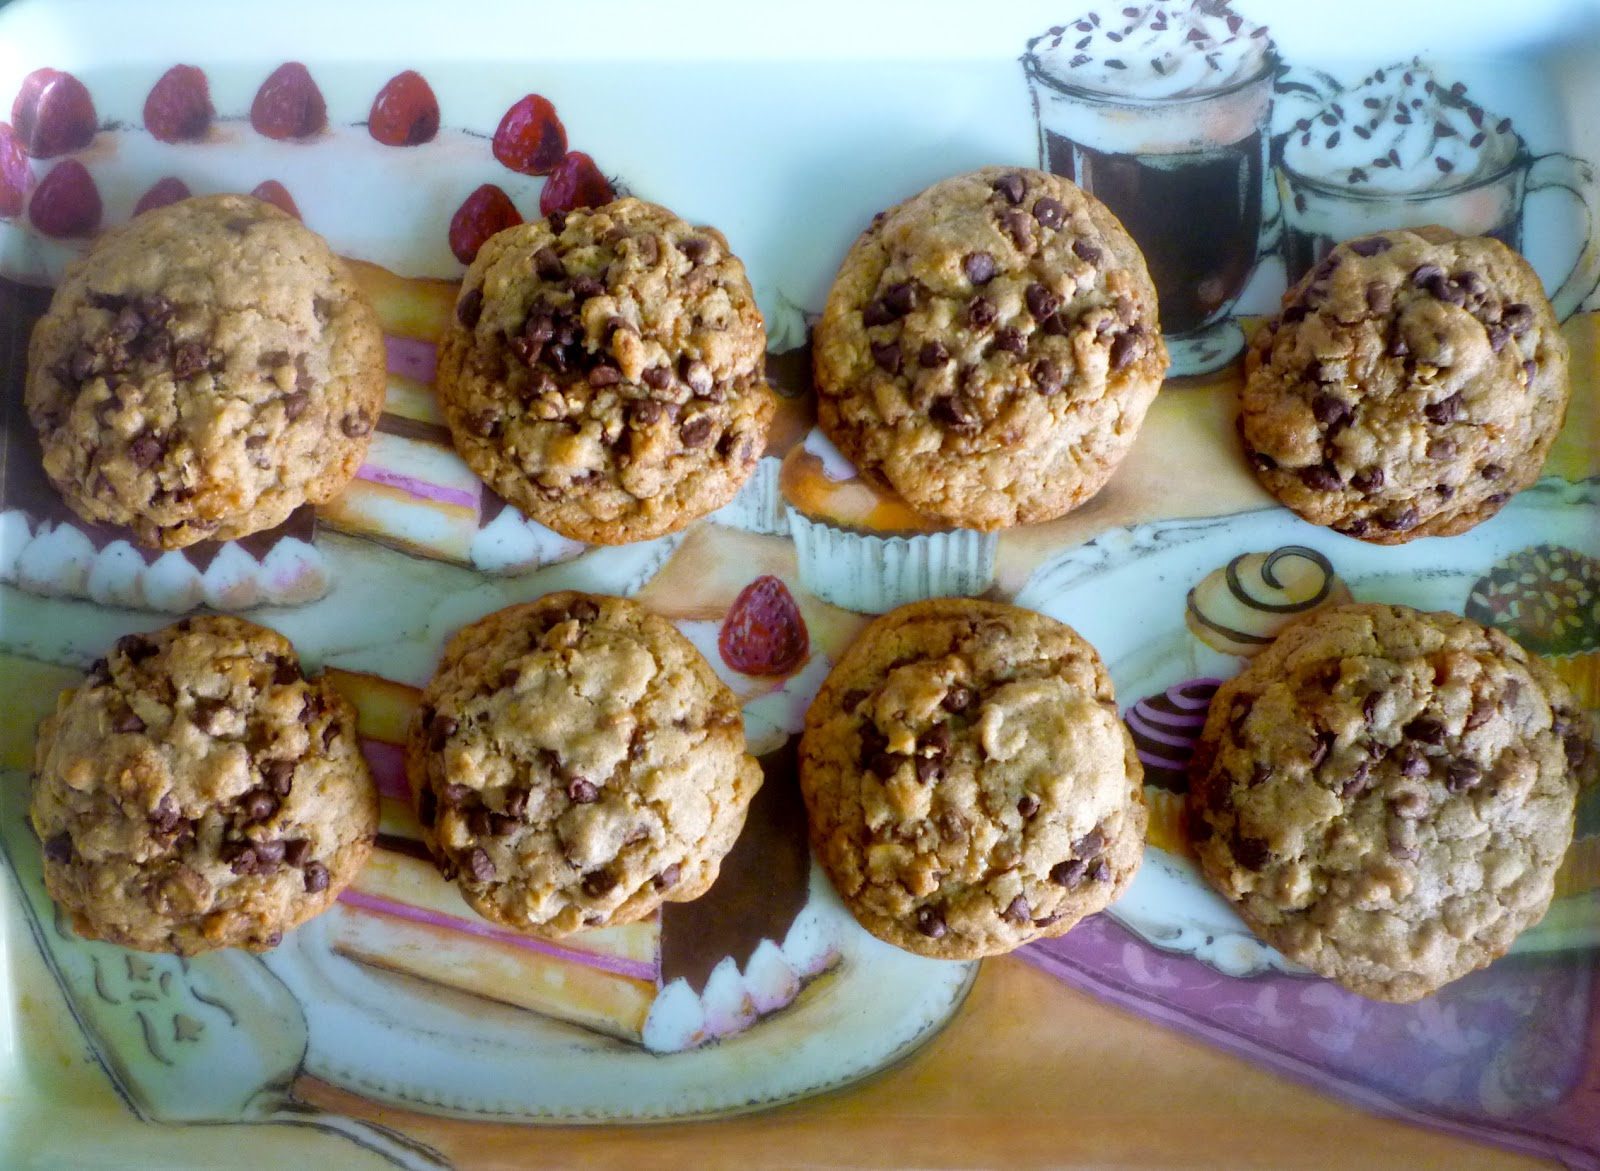 ... Baking in the Barbershop?!: Oatmeal Toffee Chocolate Chip Cookies